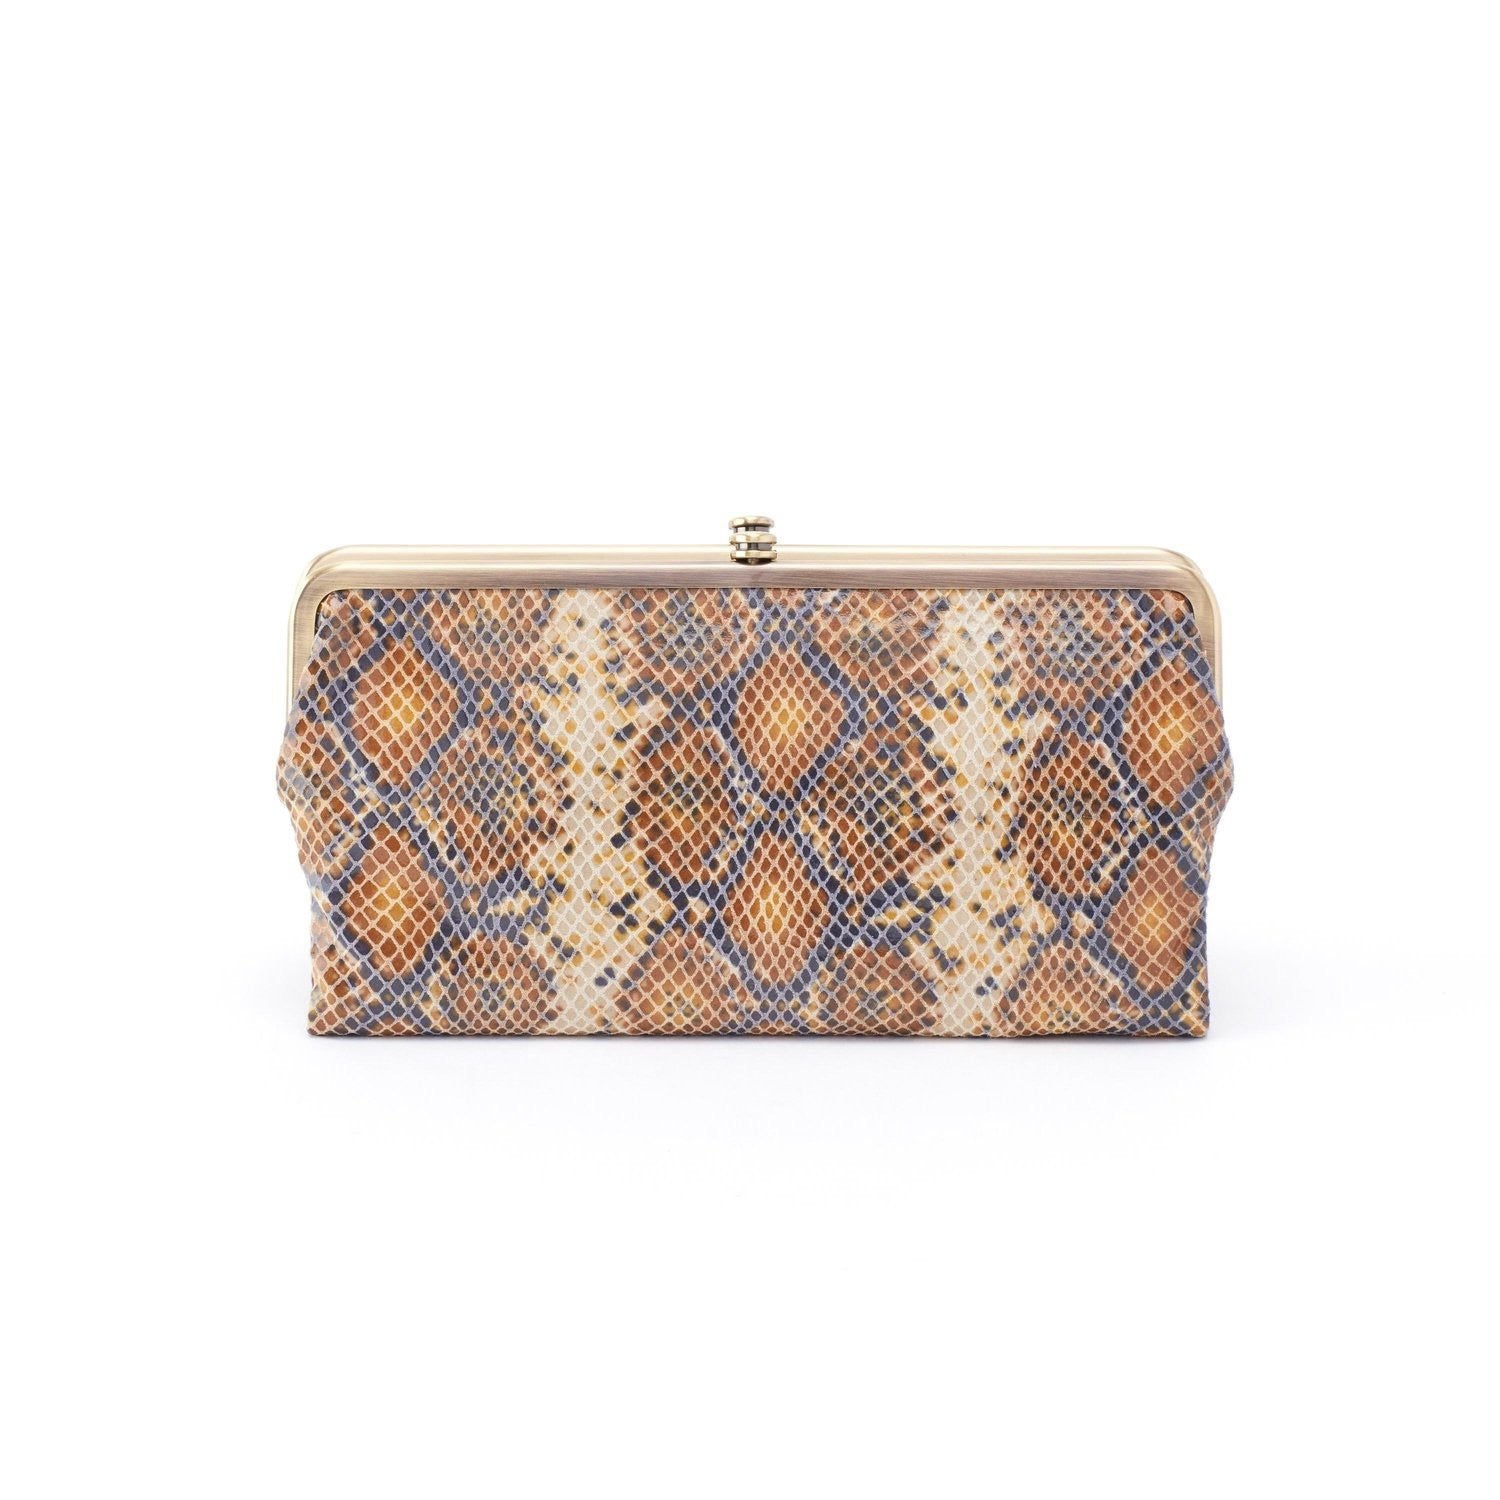 4f4d843f7e5f Hobo The Original Lauren Clutch Wallet – A Little Bird Boutique